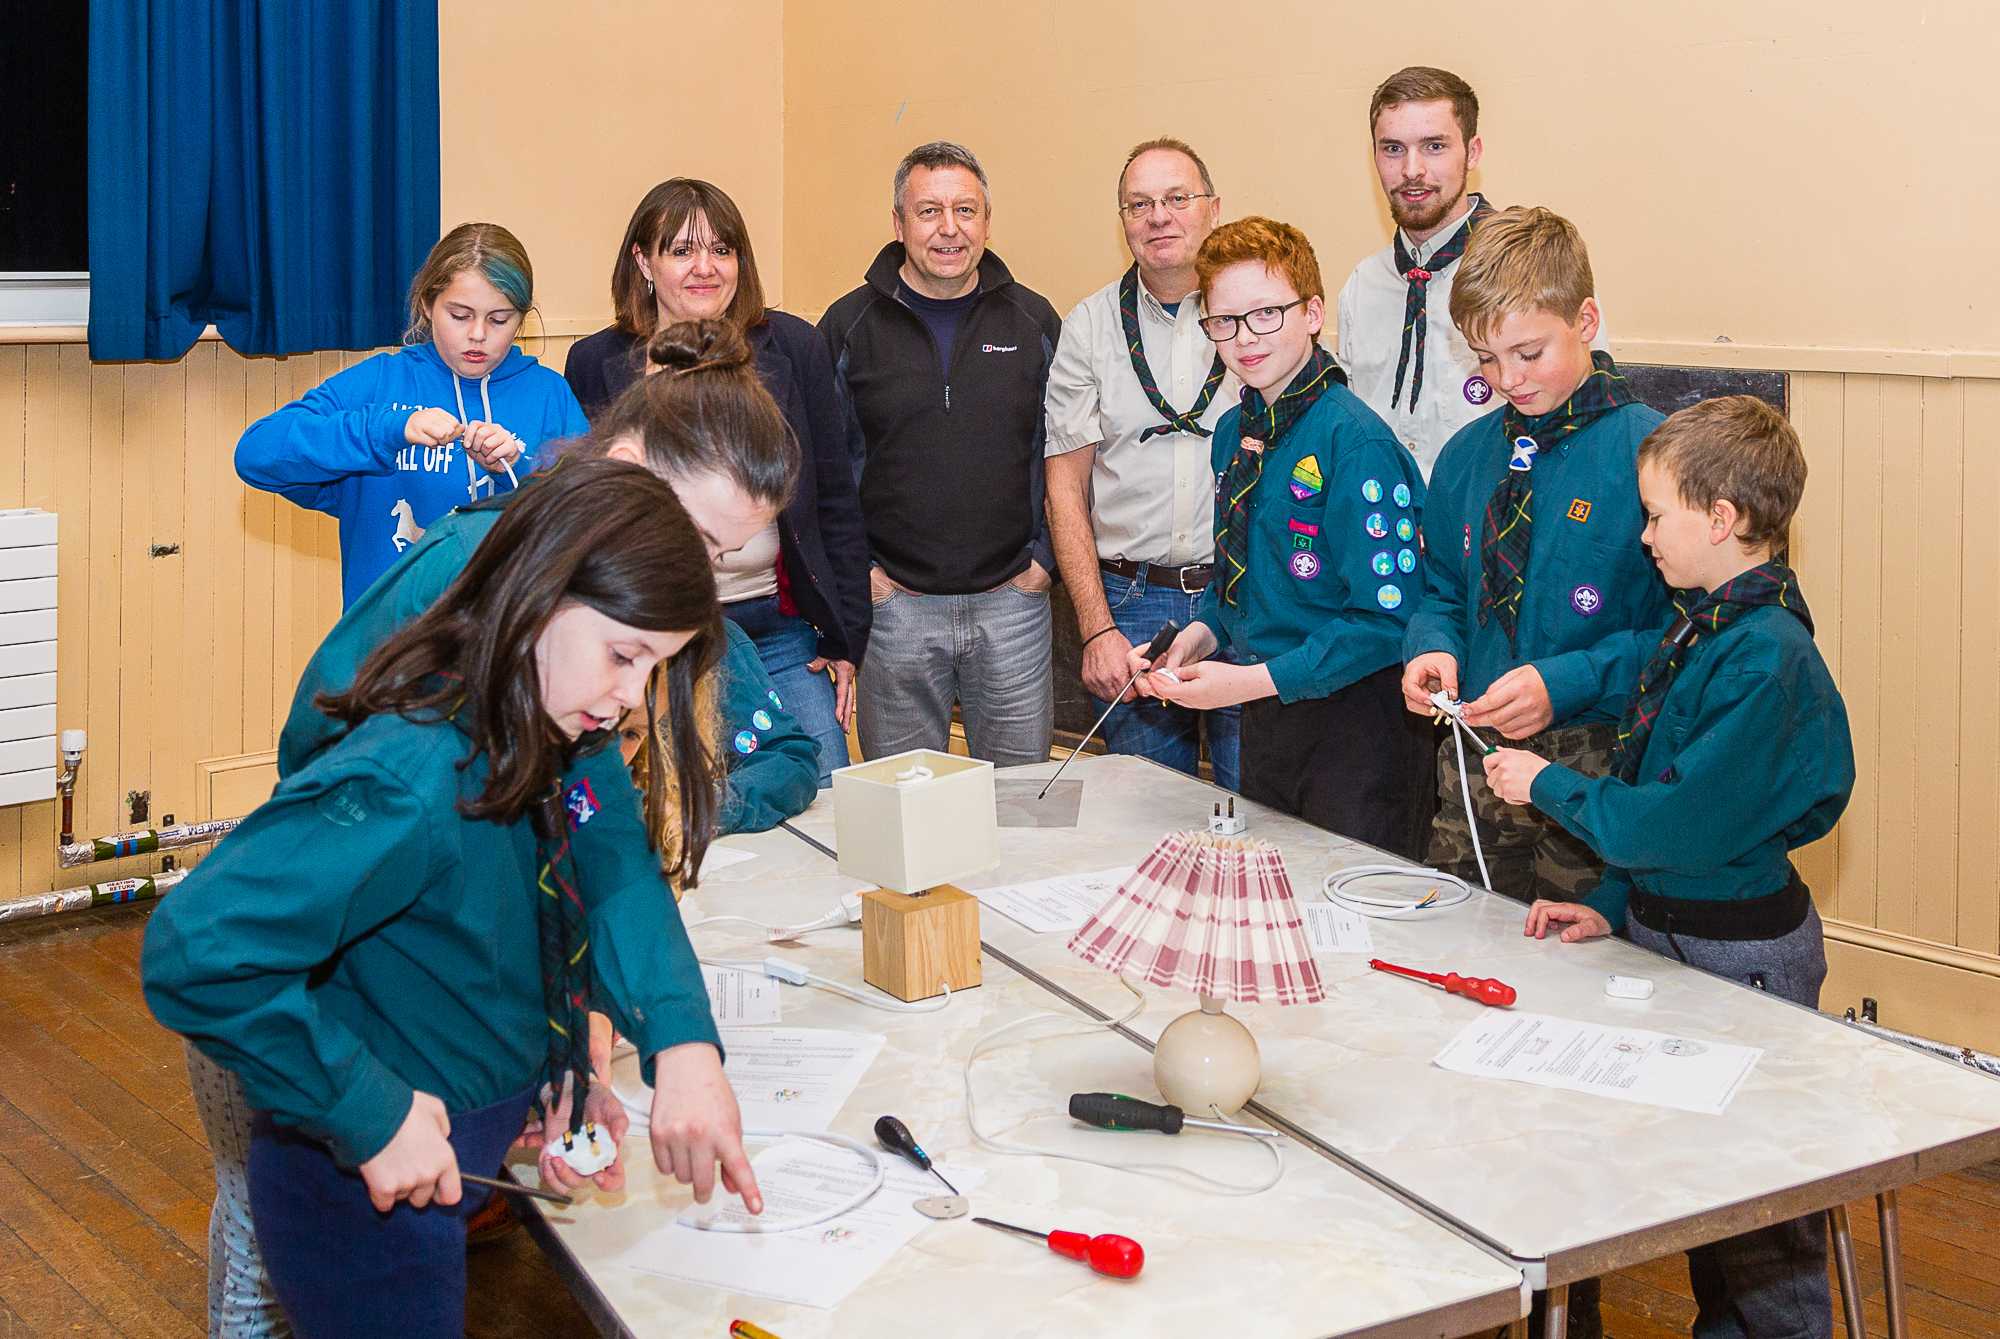 Councillor Angus Forbes with Scout Leaders Richard Prince and Cameron Peach and young Scouts in the community hall.